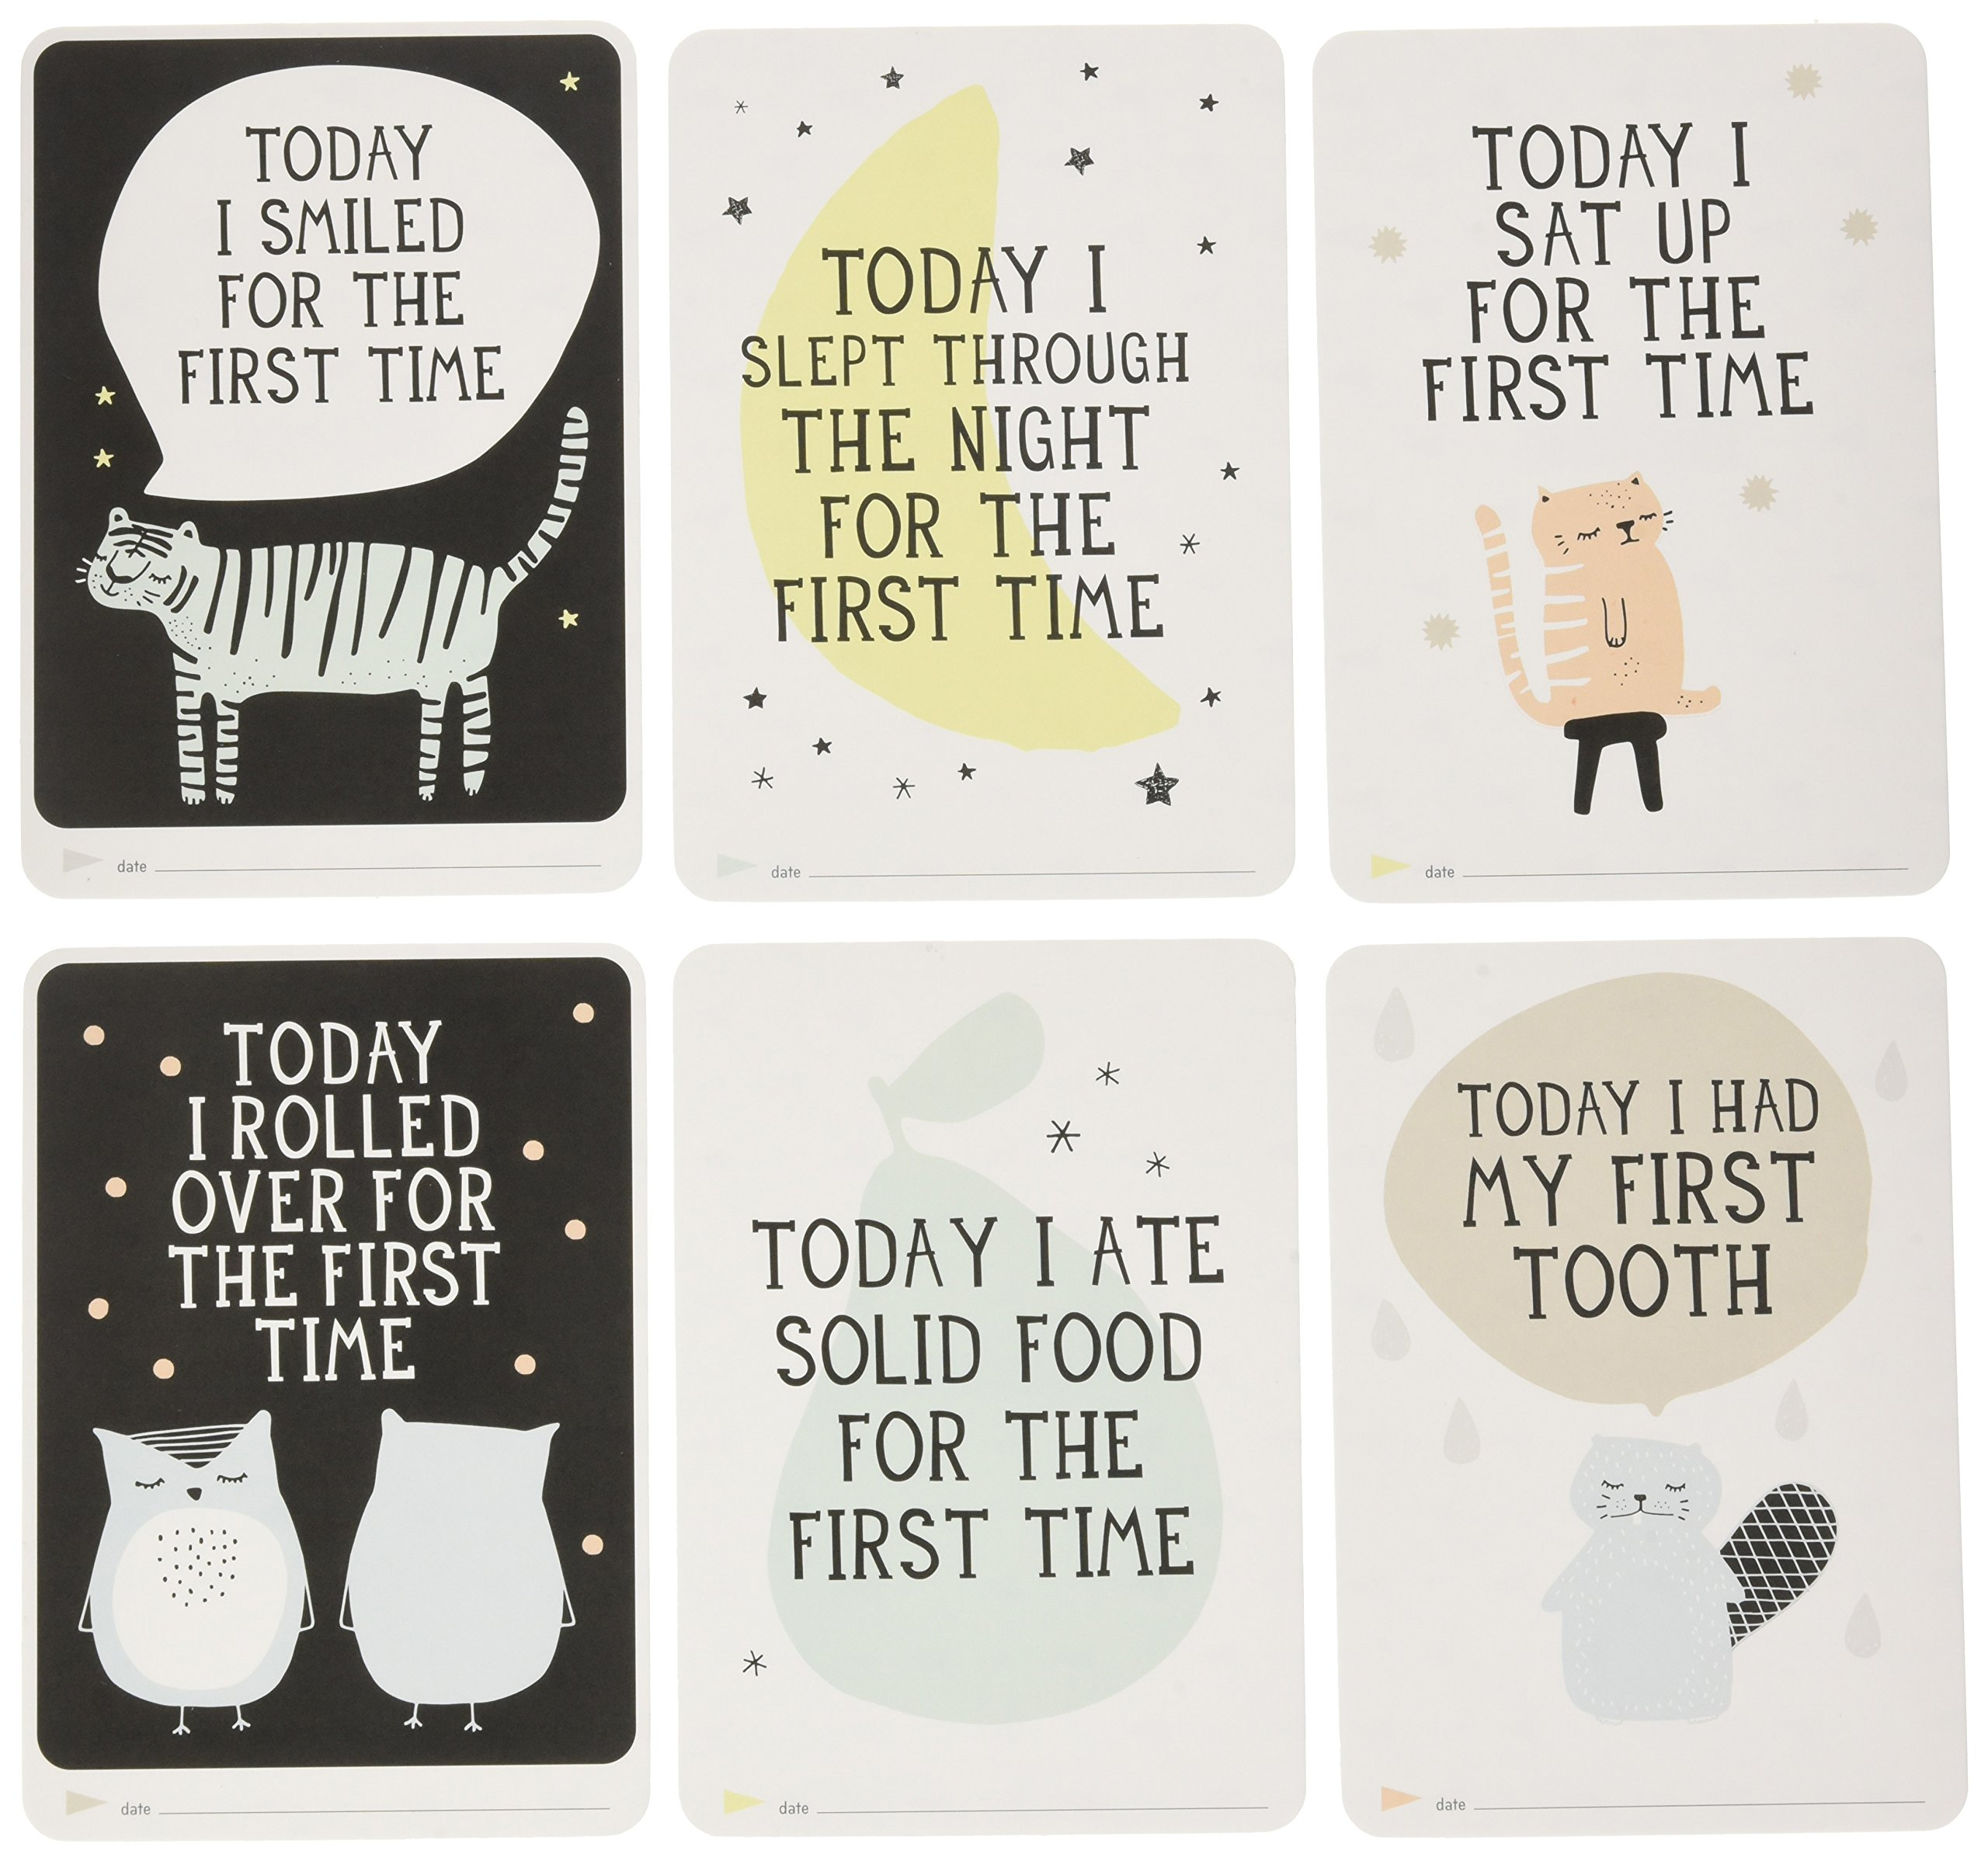 94a4580eef2 Get Quotations · Milestone - Baby Photo Cards Over the Moon - Set of 30  Photo Cards to Capture